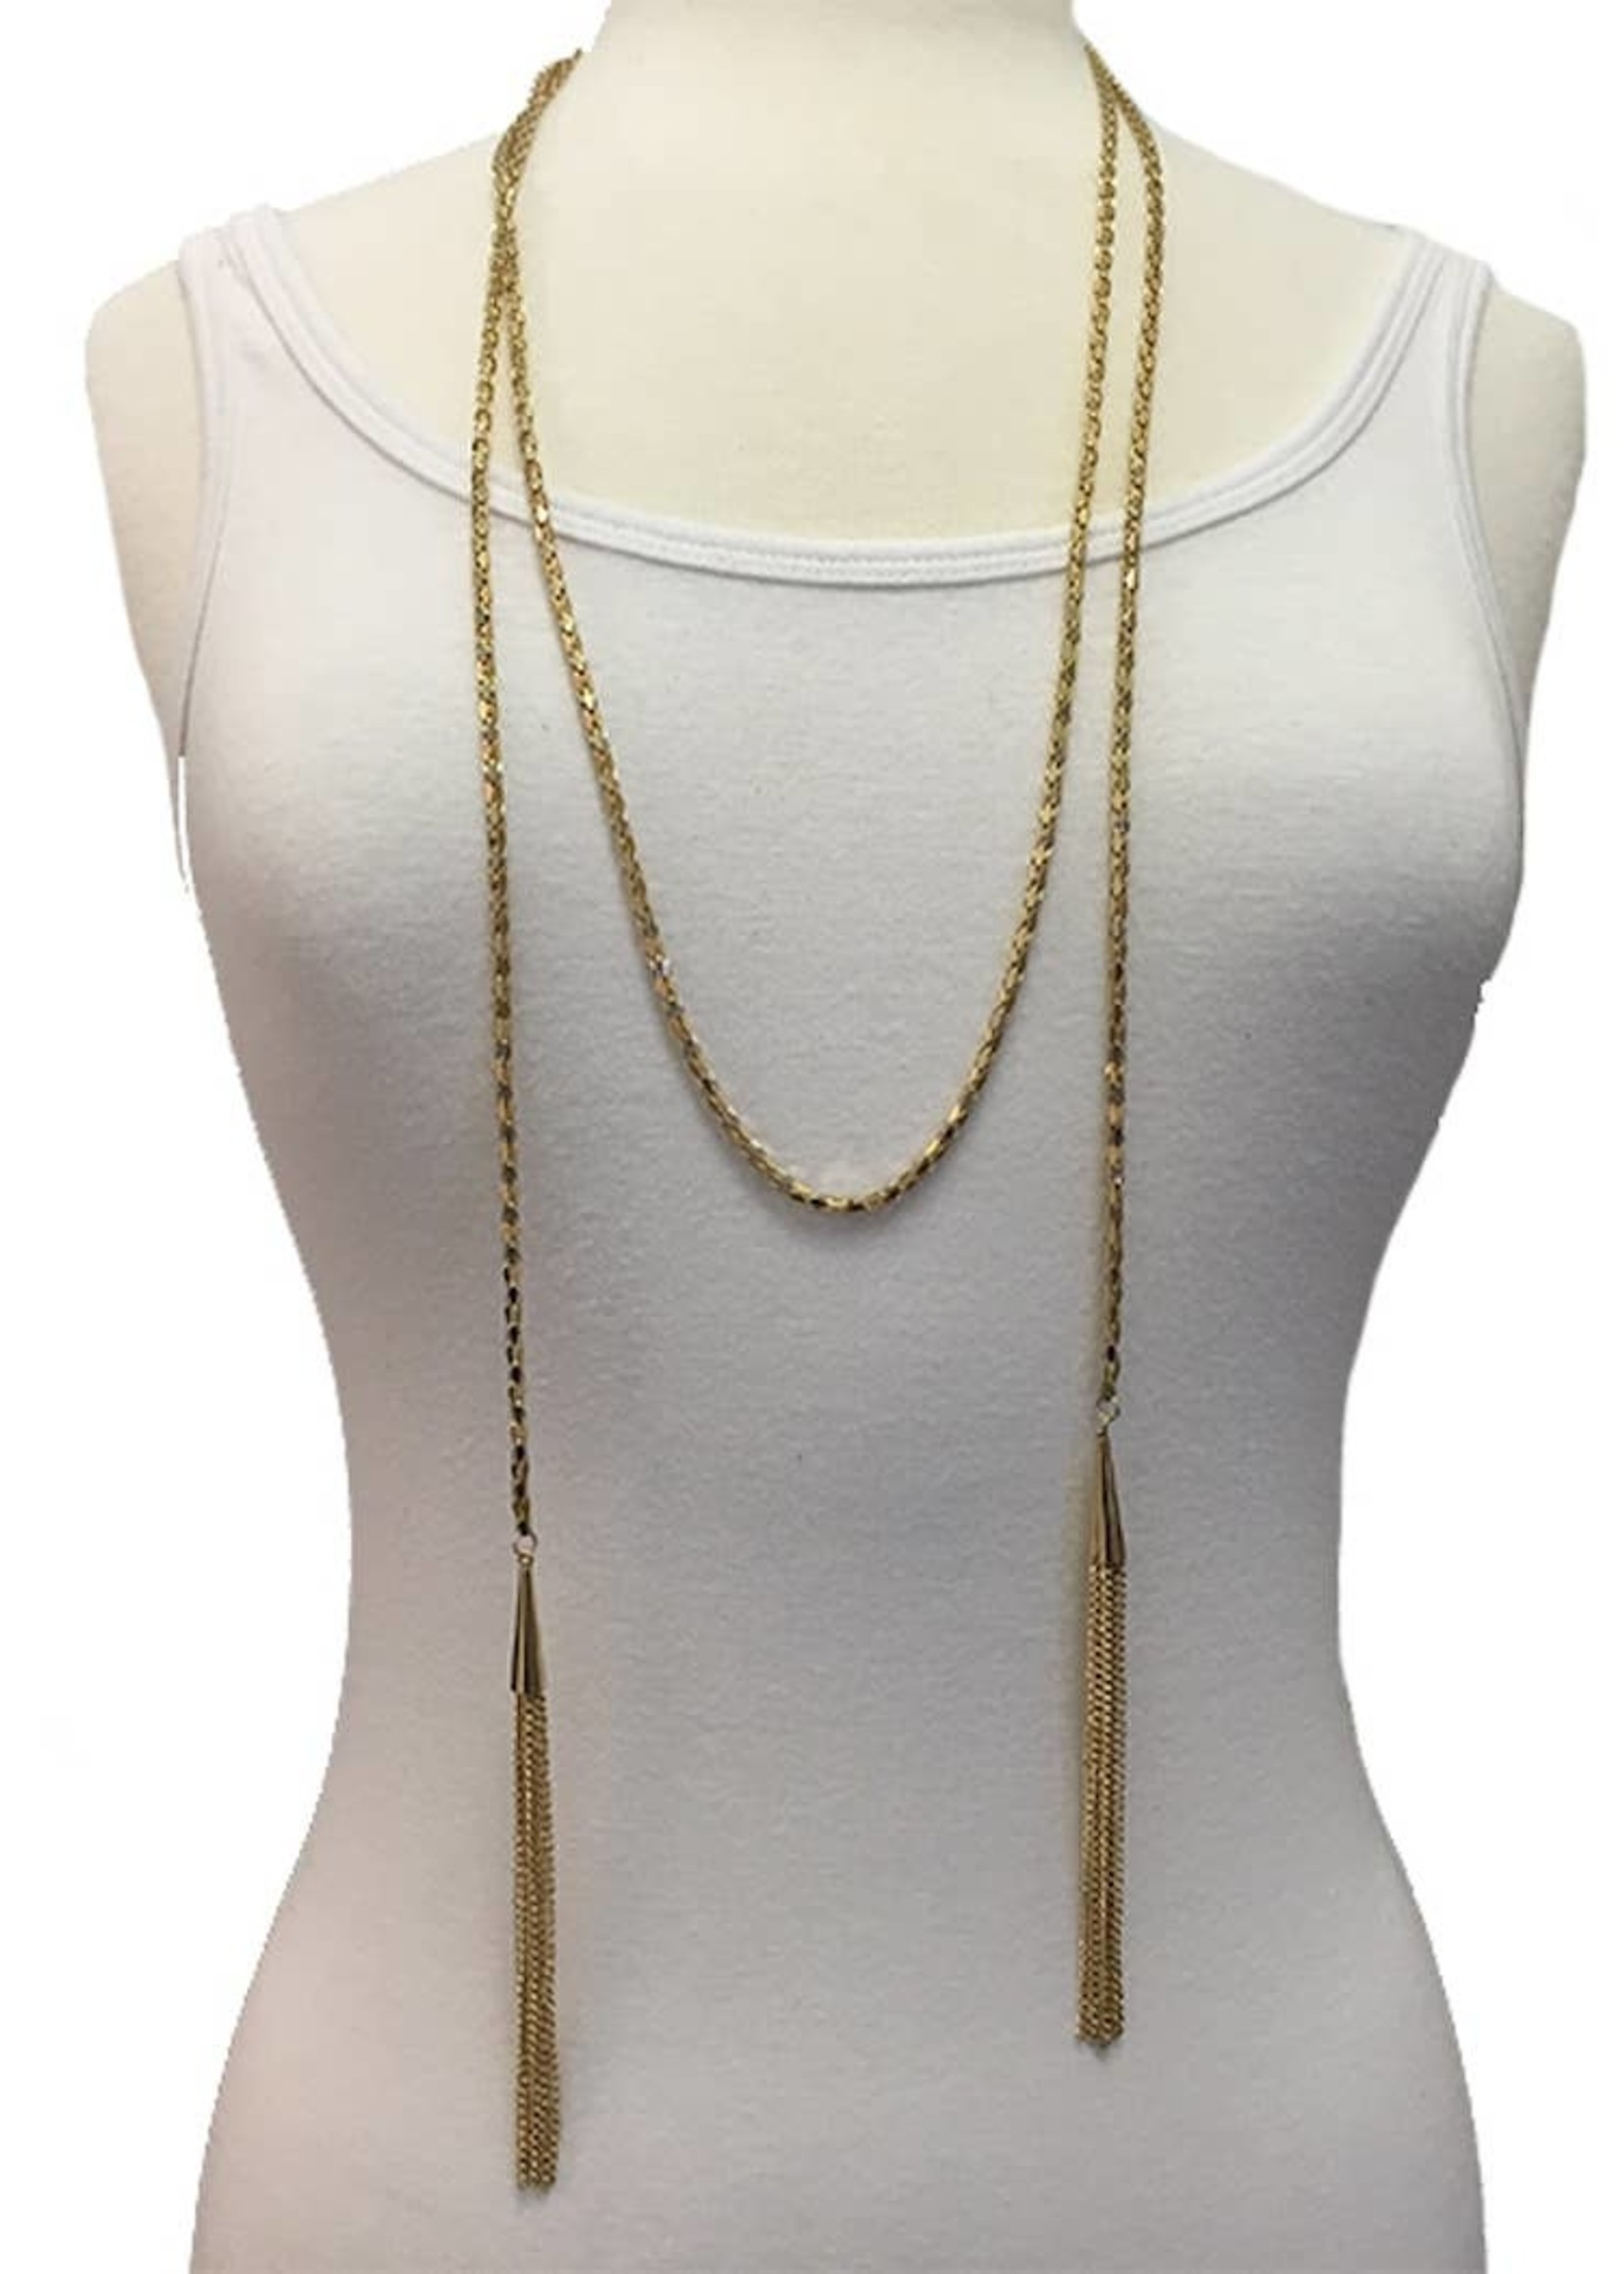 Draped In Gold Necklace